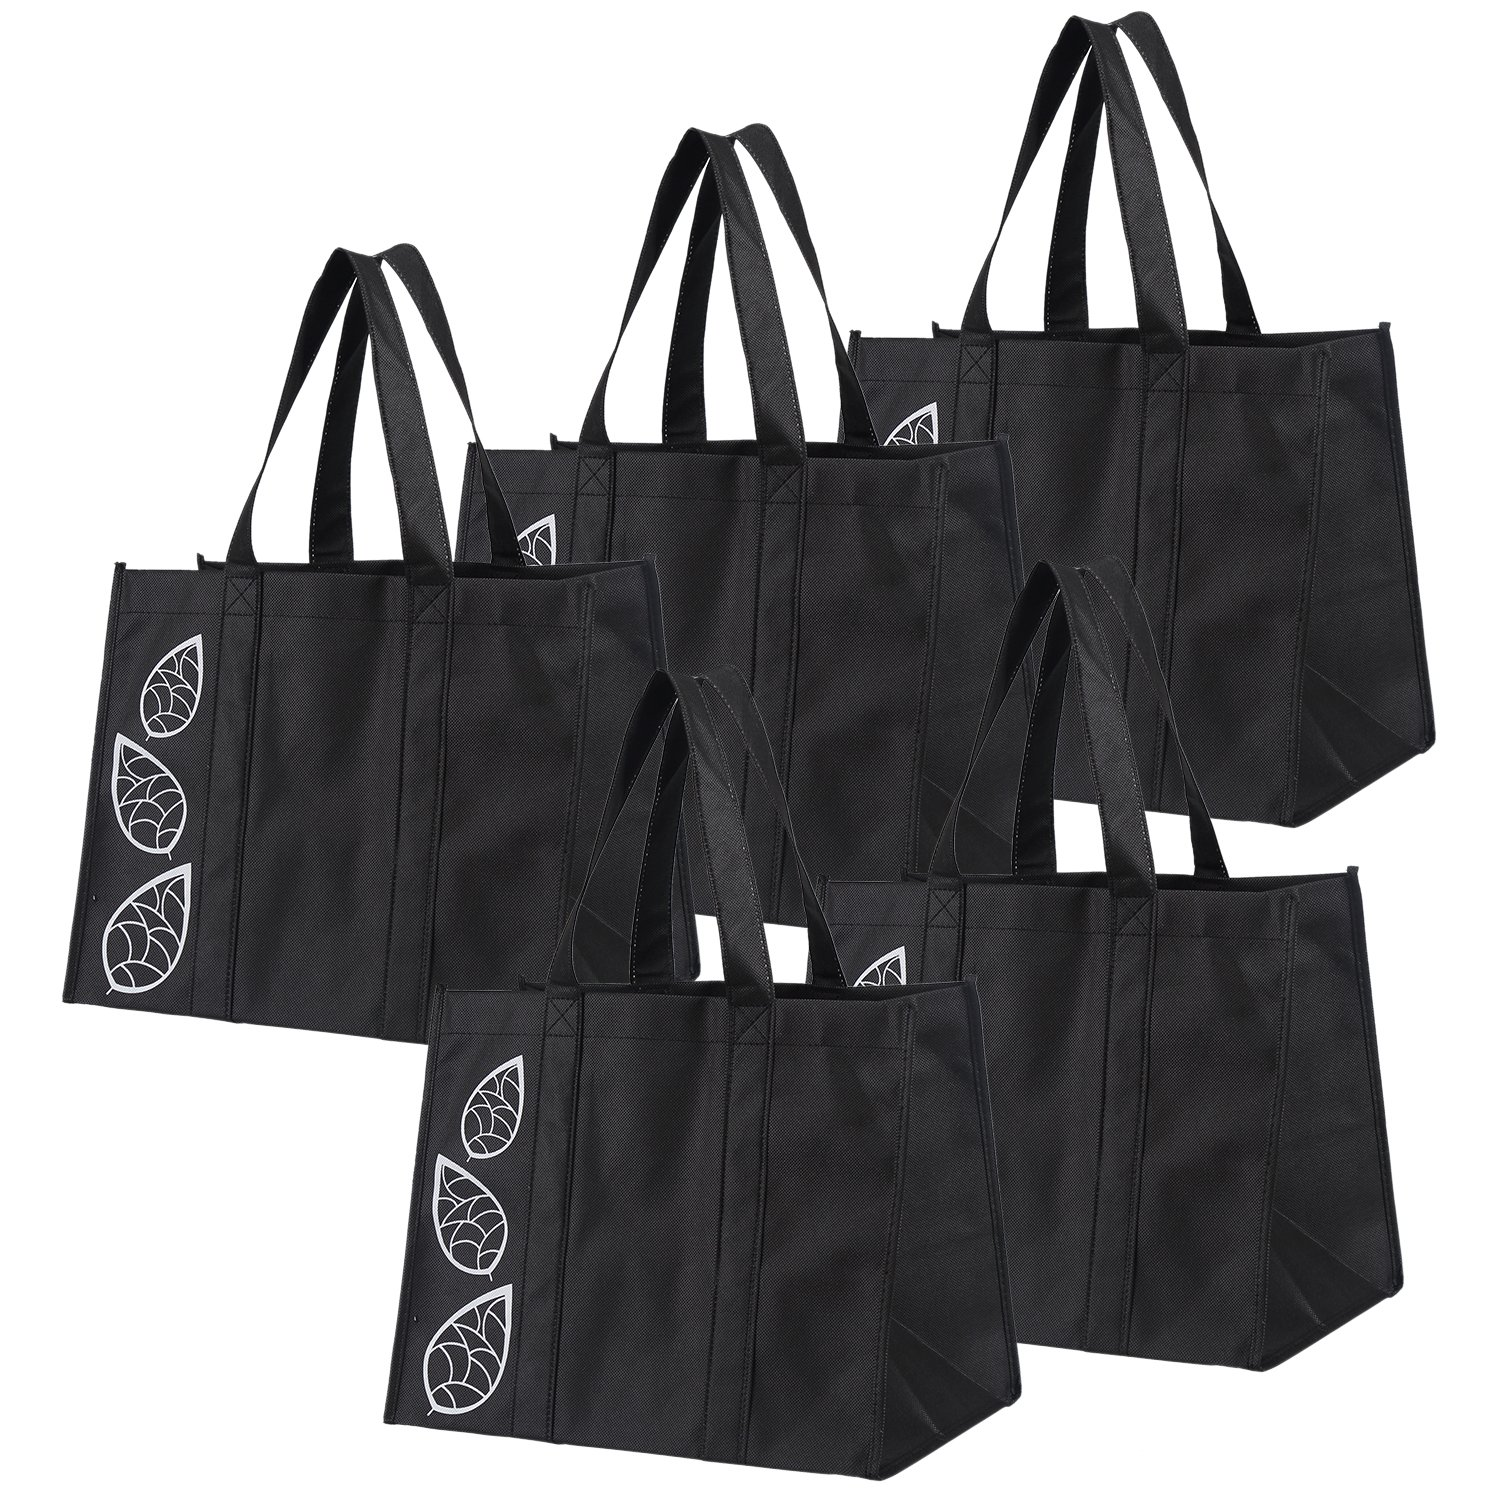 8aaad136a8ba Amazon.com  Bekith 5 Piece Large Collapsible Shopping Bags Set ...